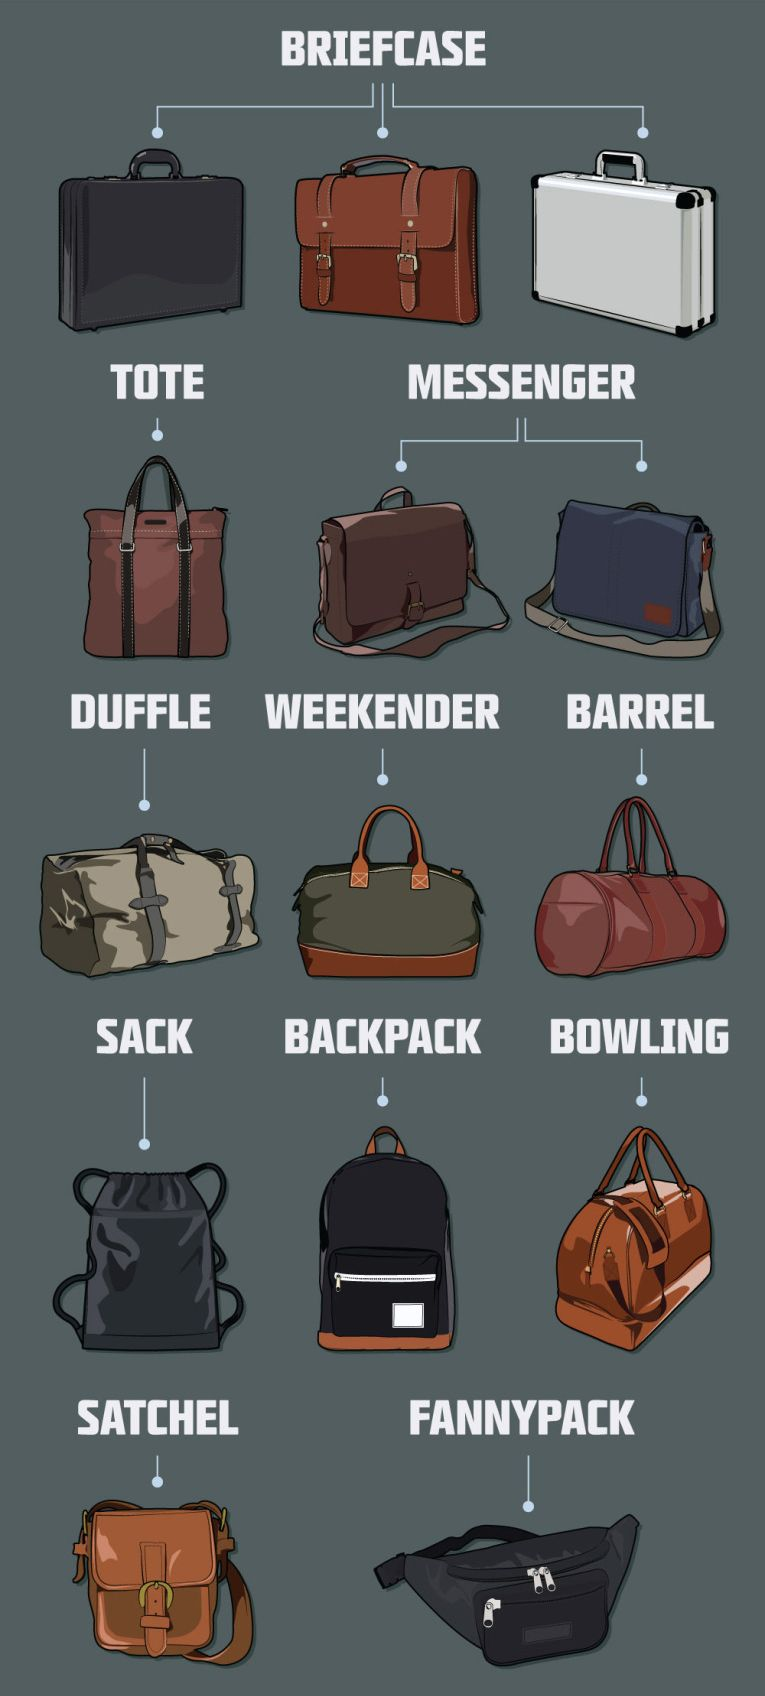 feaeb55f15867cf3a1941c4d1e64469e men's office hand bags visual glossary fashioninfographics